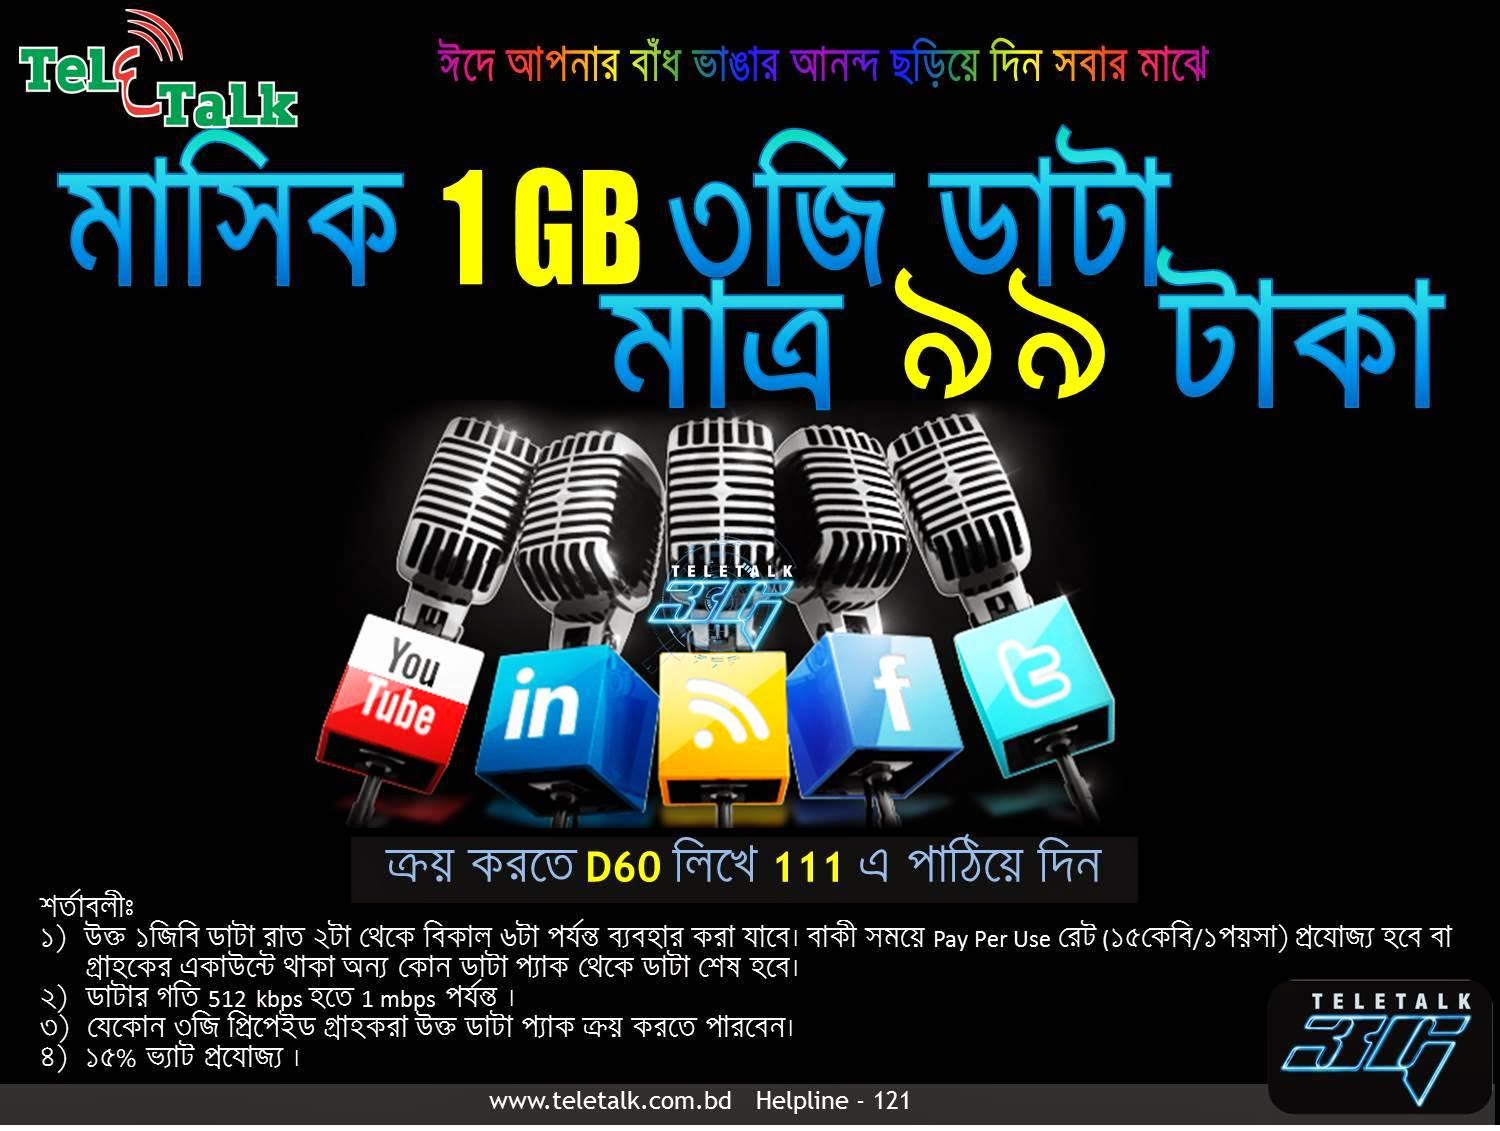 Teletalk-3G-1GB-99Tk-with-30-days-validity